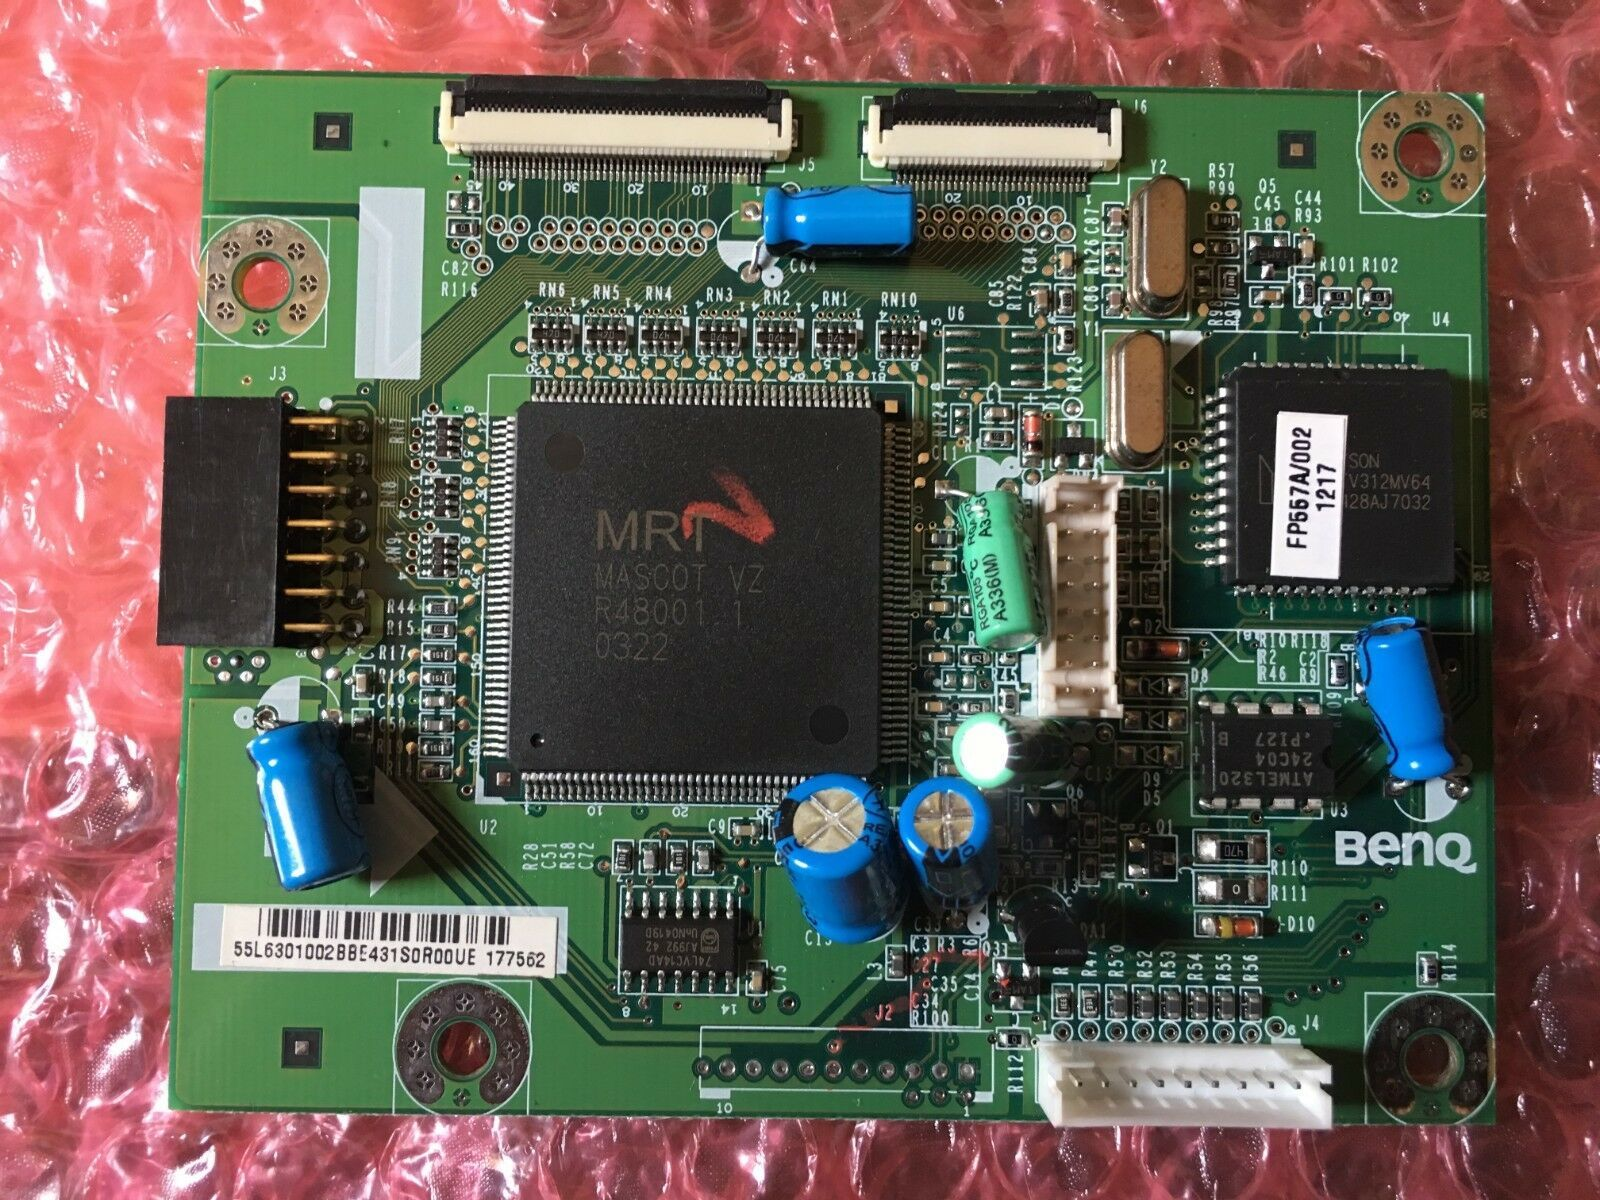 Primary image for BENQ POWER SUPPLY BOARD 177562, FREE SHIPPING